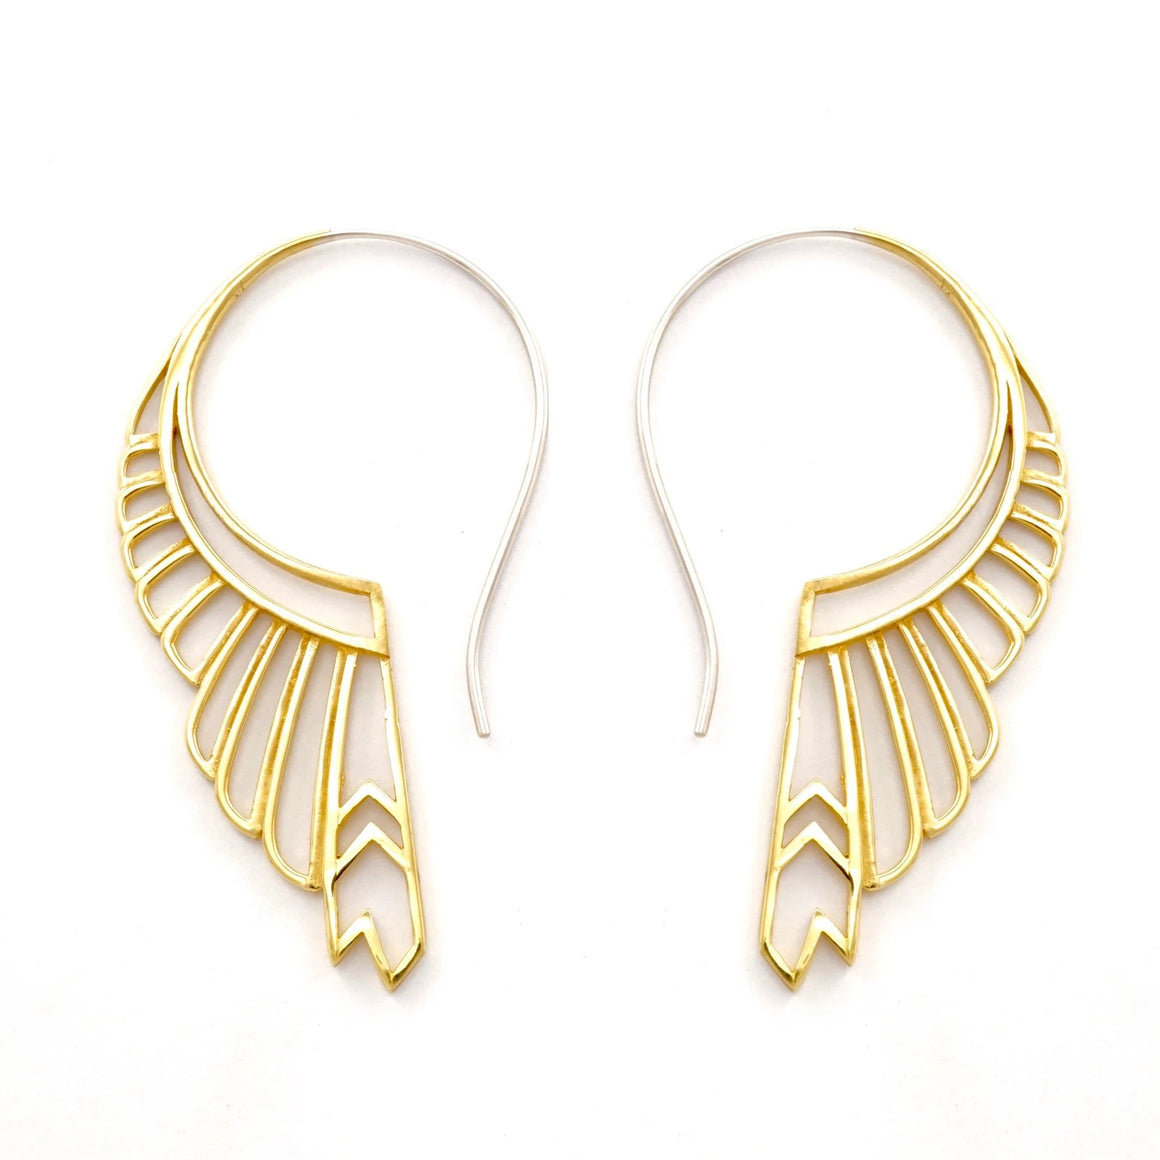 Feather Wing Earrings Large - gold-tone with silver ear-stems - huntress